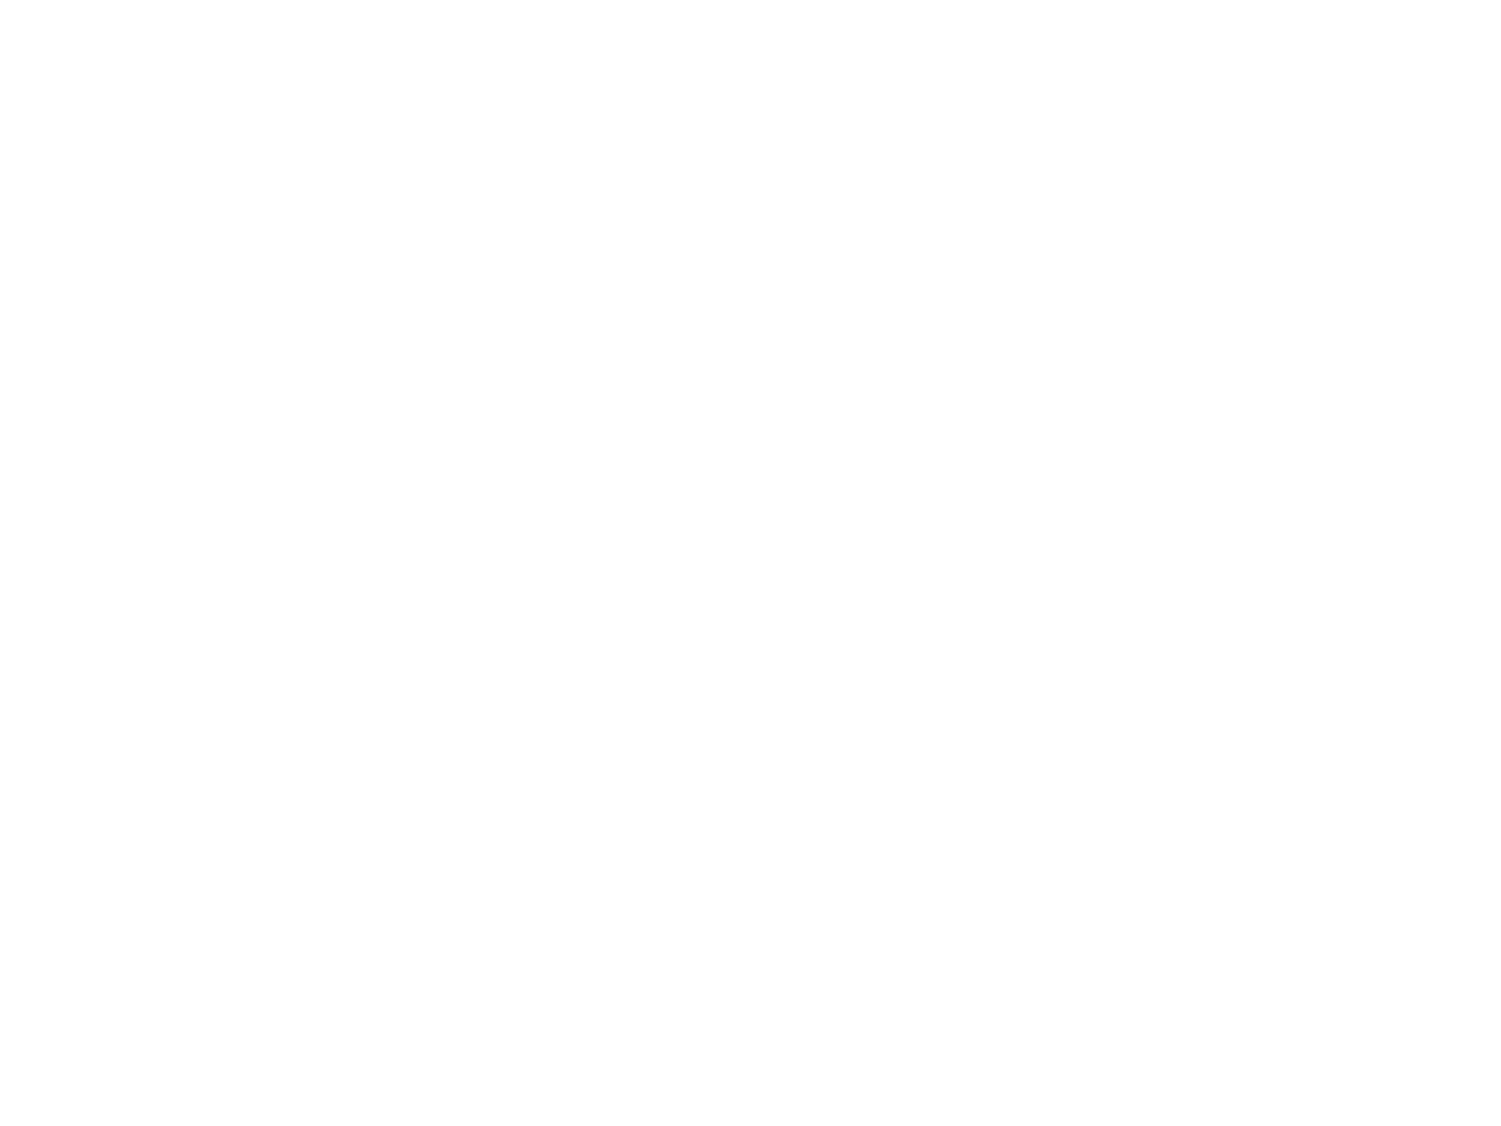 Acorn Glade Certificate of Excellence 2017